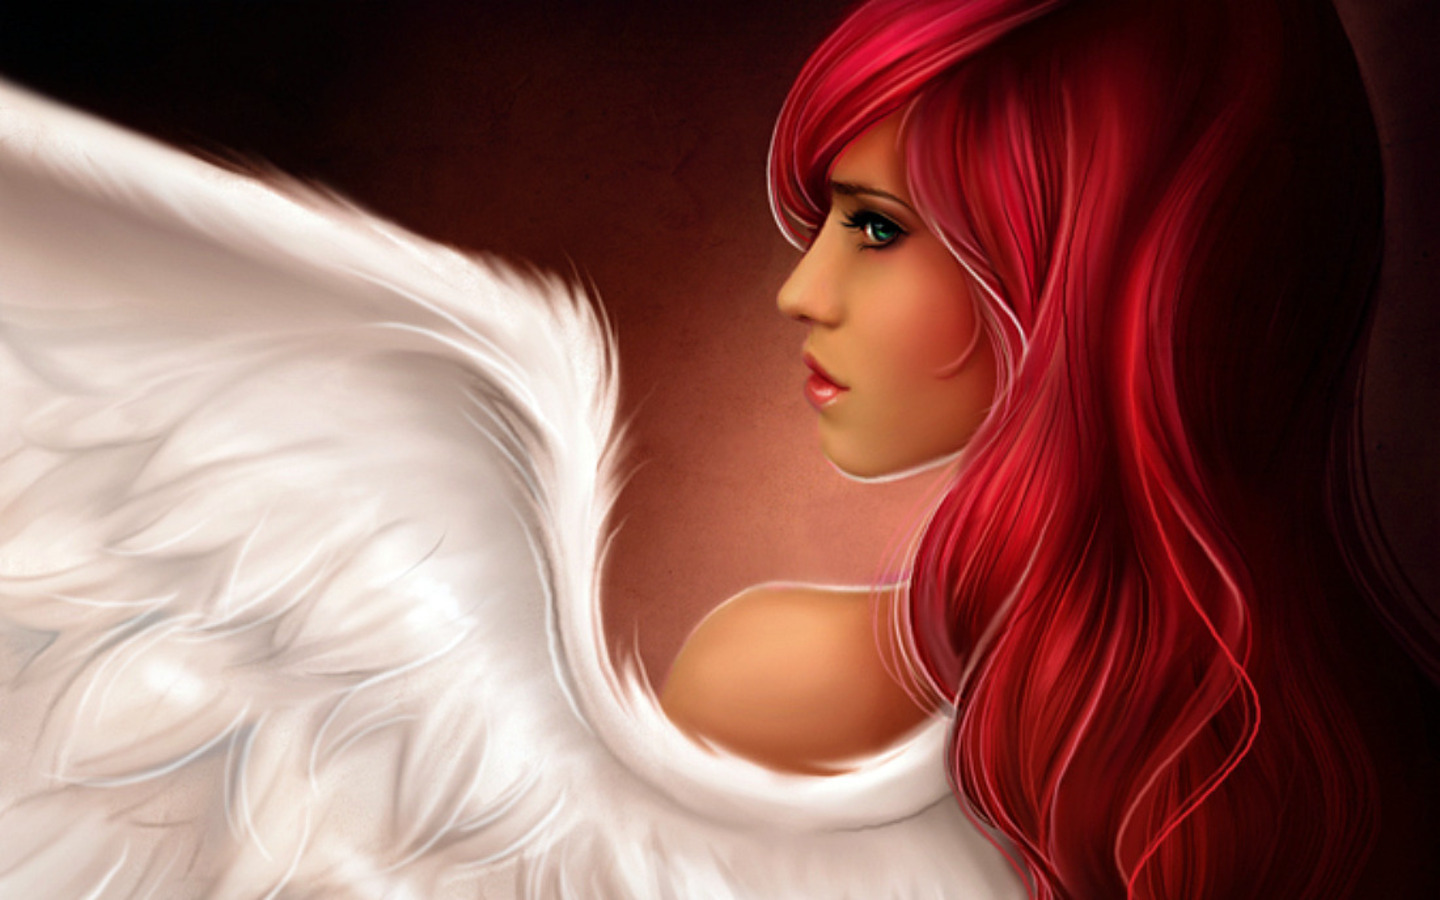 woman redheads illustrations angel HD Wallpaper